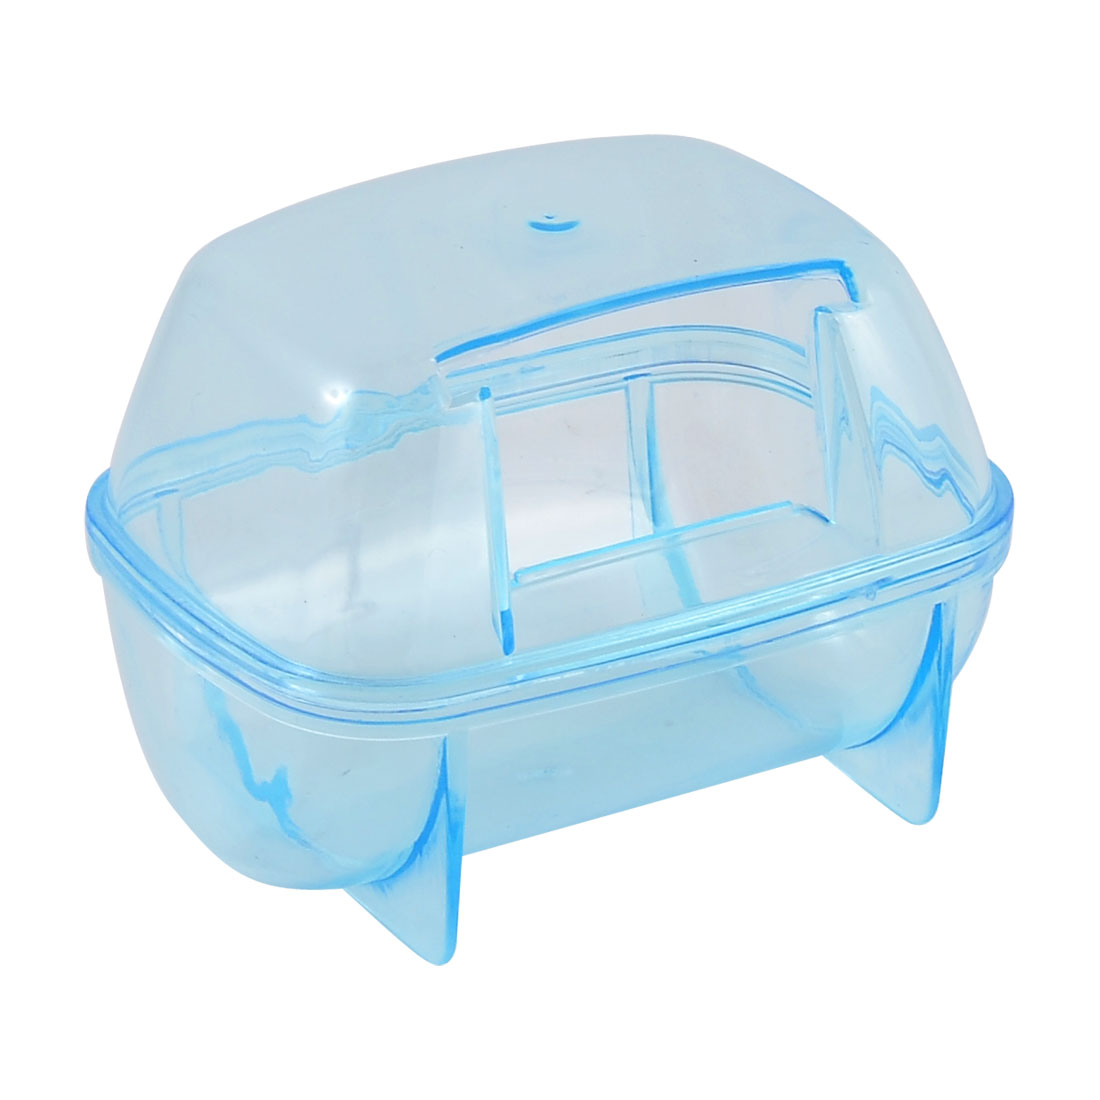 Plastic Detachable Pet Gerbil Hamster House Cage Playing Habitat Blue